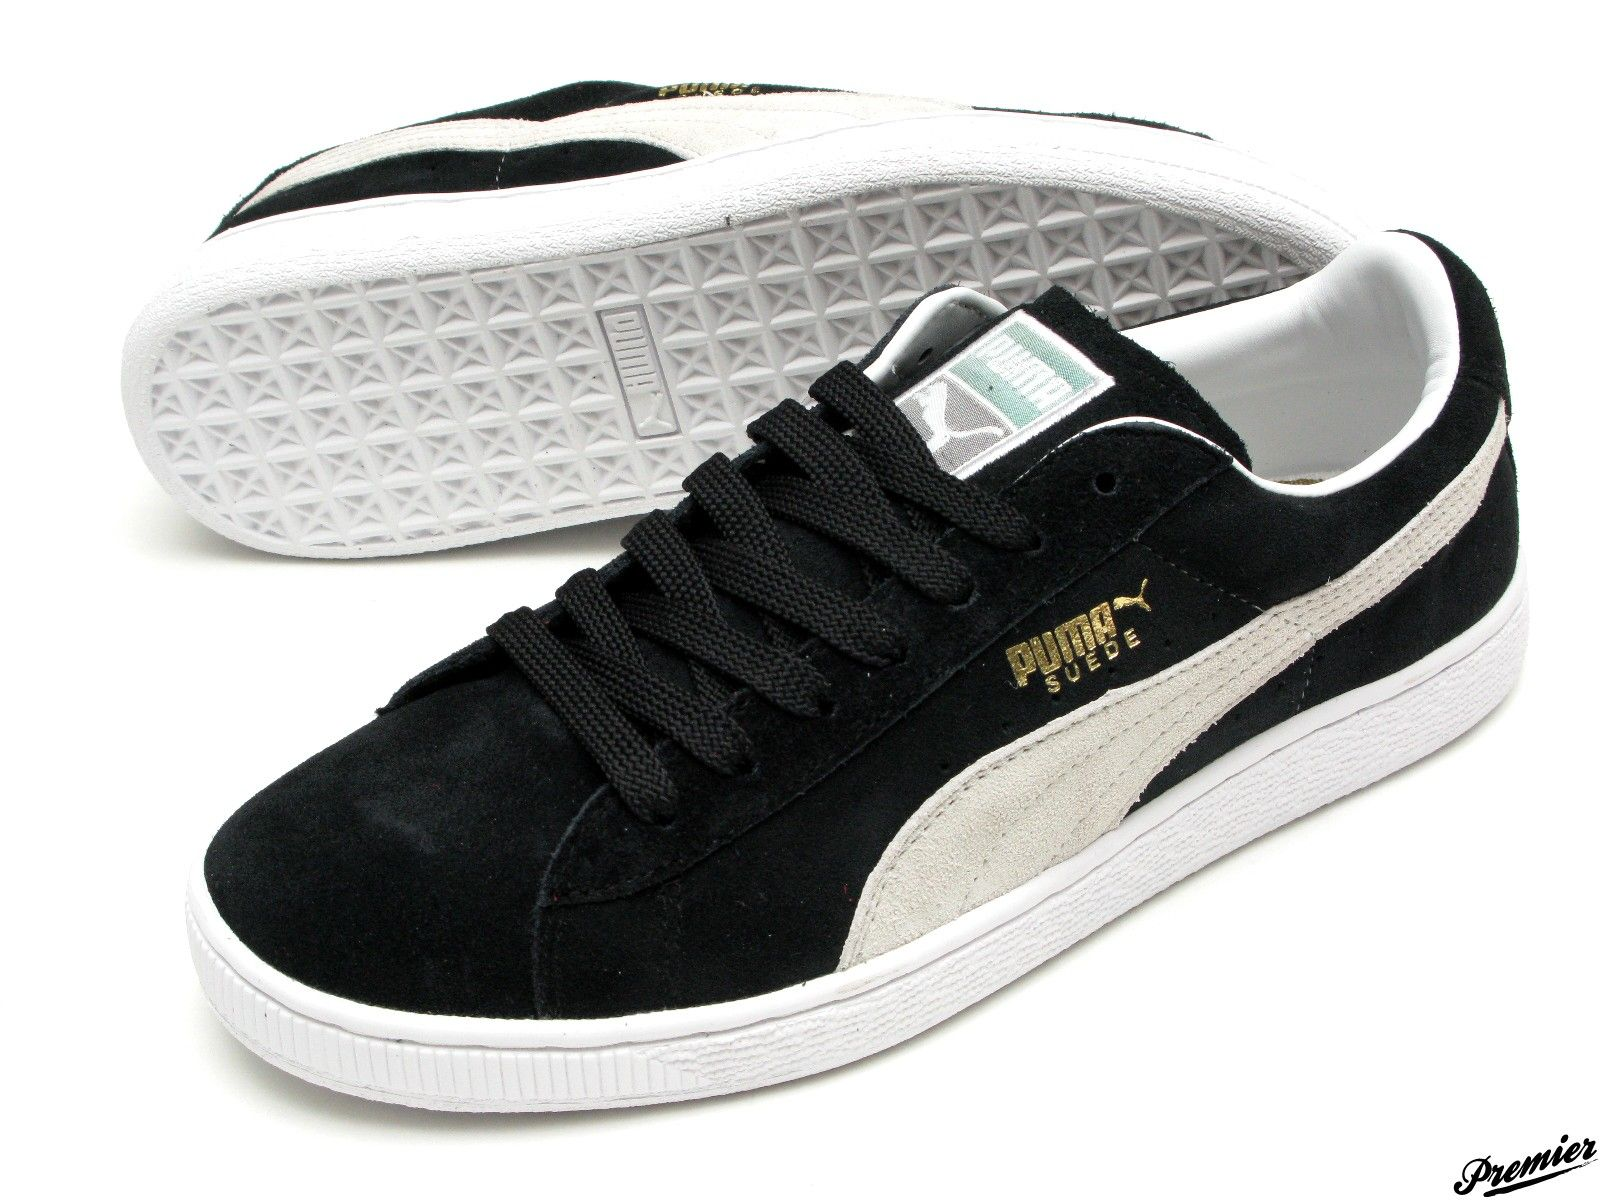 Puma - Clyde - Black   White Suede  The best sneaker ever...  72abbe780